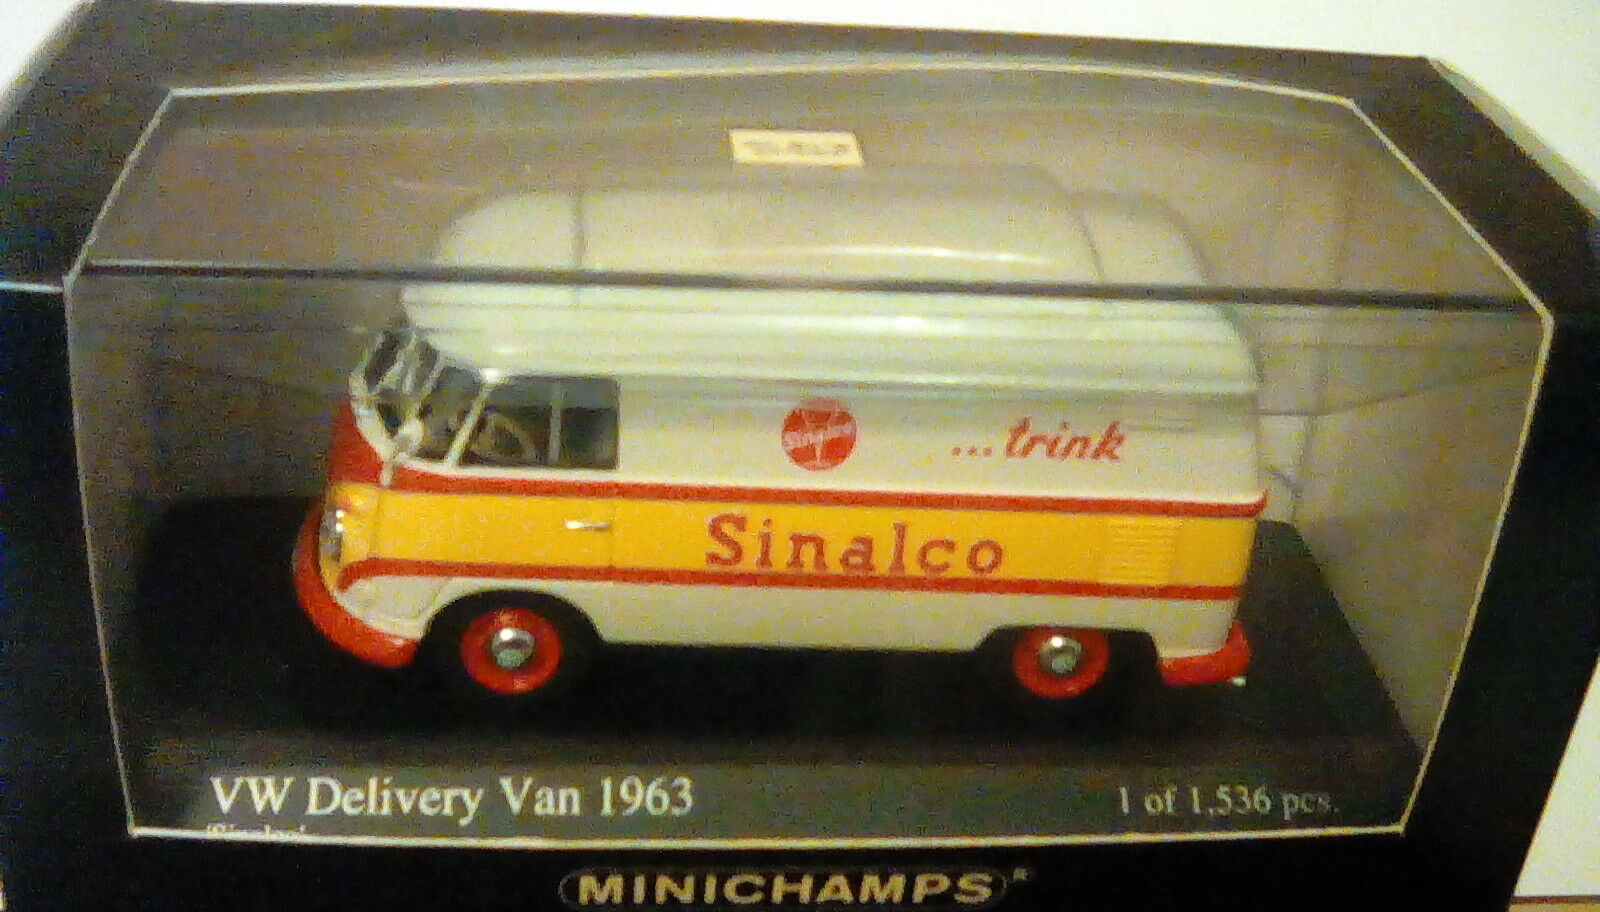 ULTRA RARE MINICHAMPS VW T1 DELIVERY VAN SINALCO 1 43 1 OF 1536 MINT IN BOX